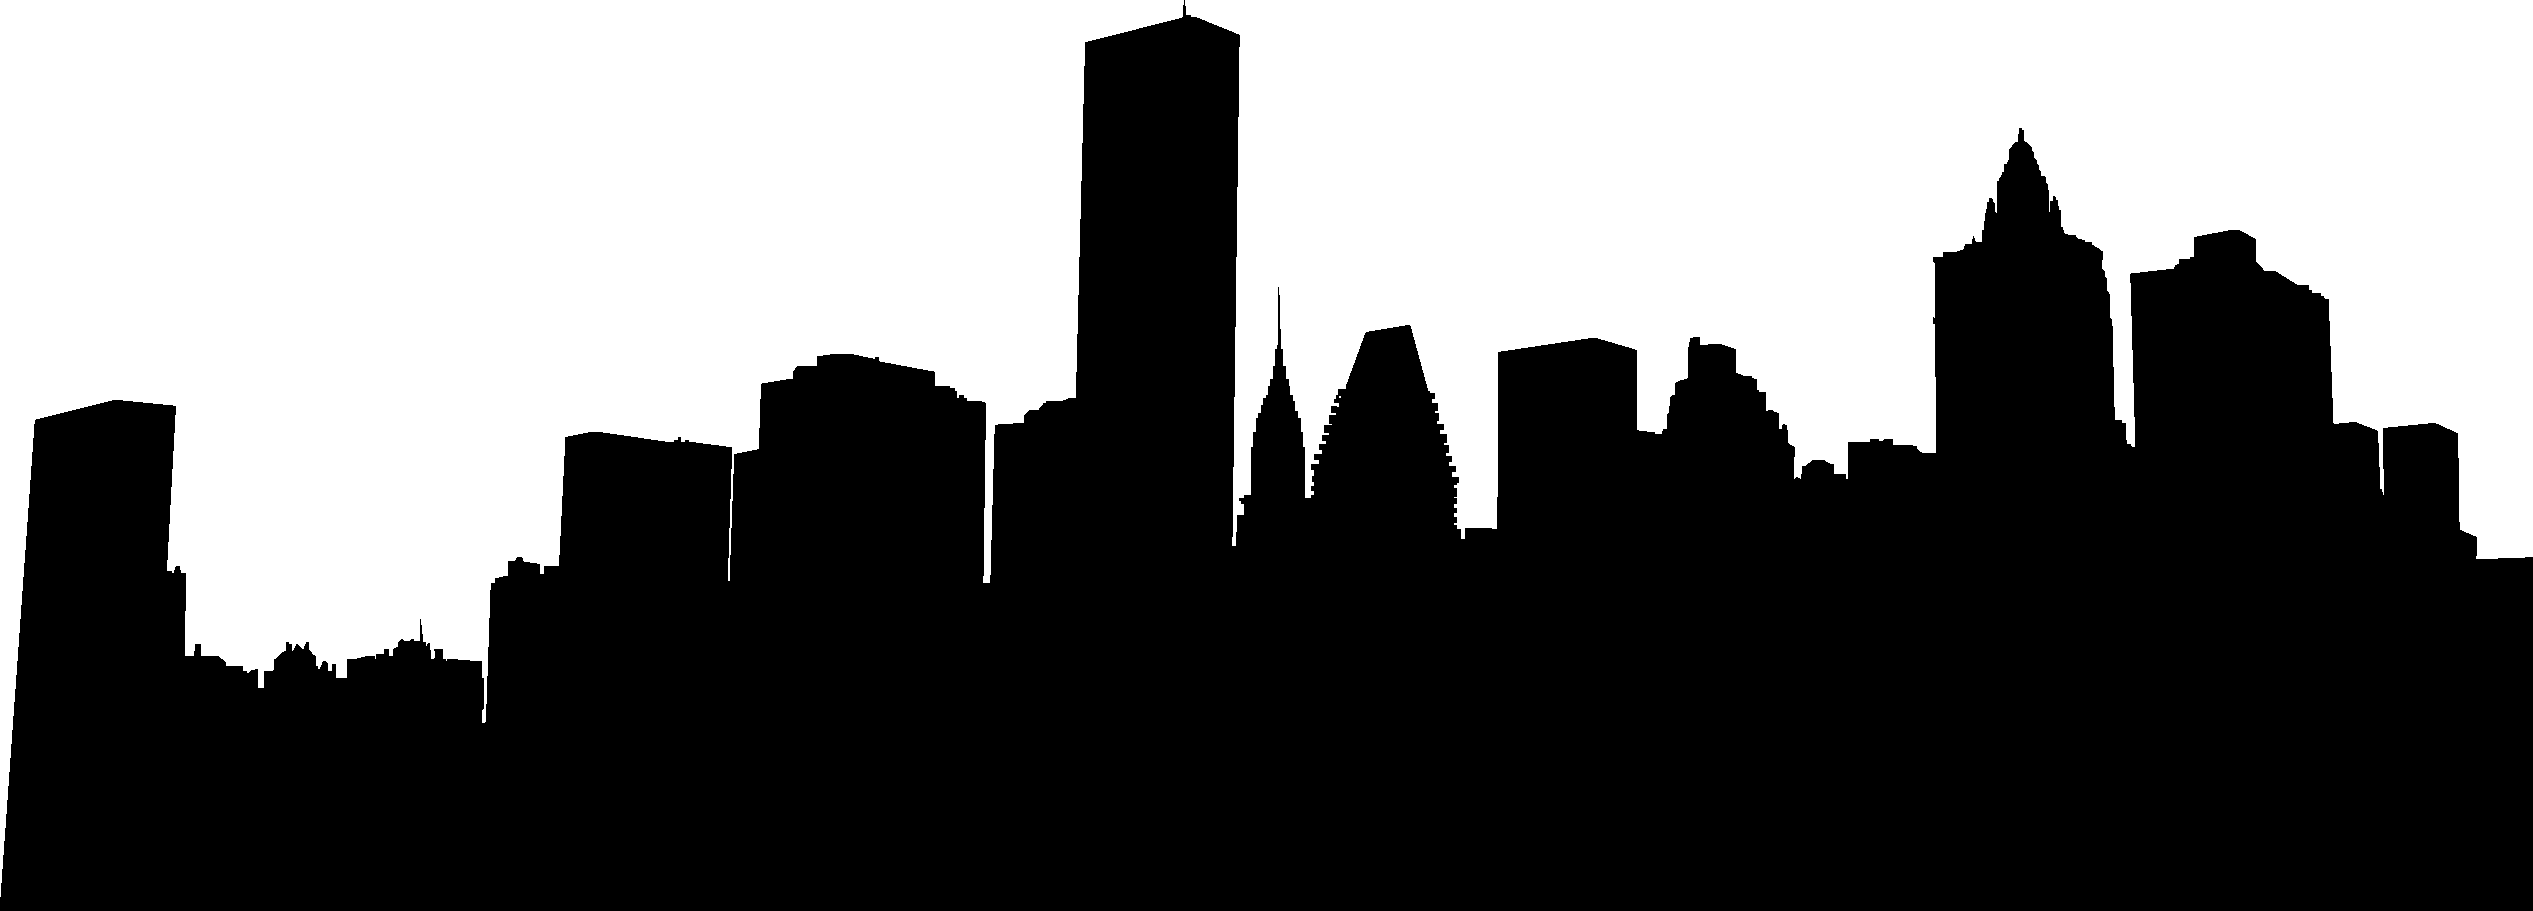 2533x911 City Skyline Silhouette 02 Vector Eps Free Download, Logo, Icons